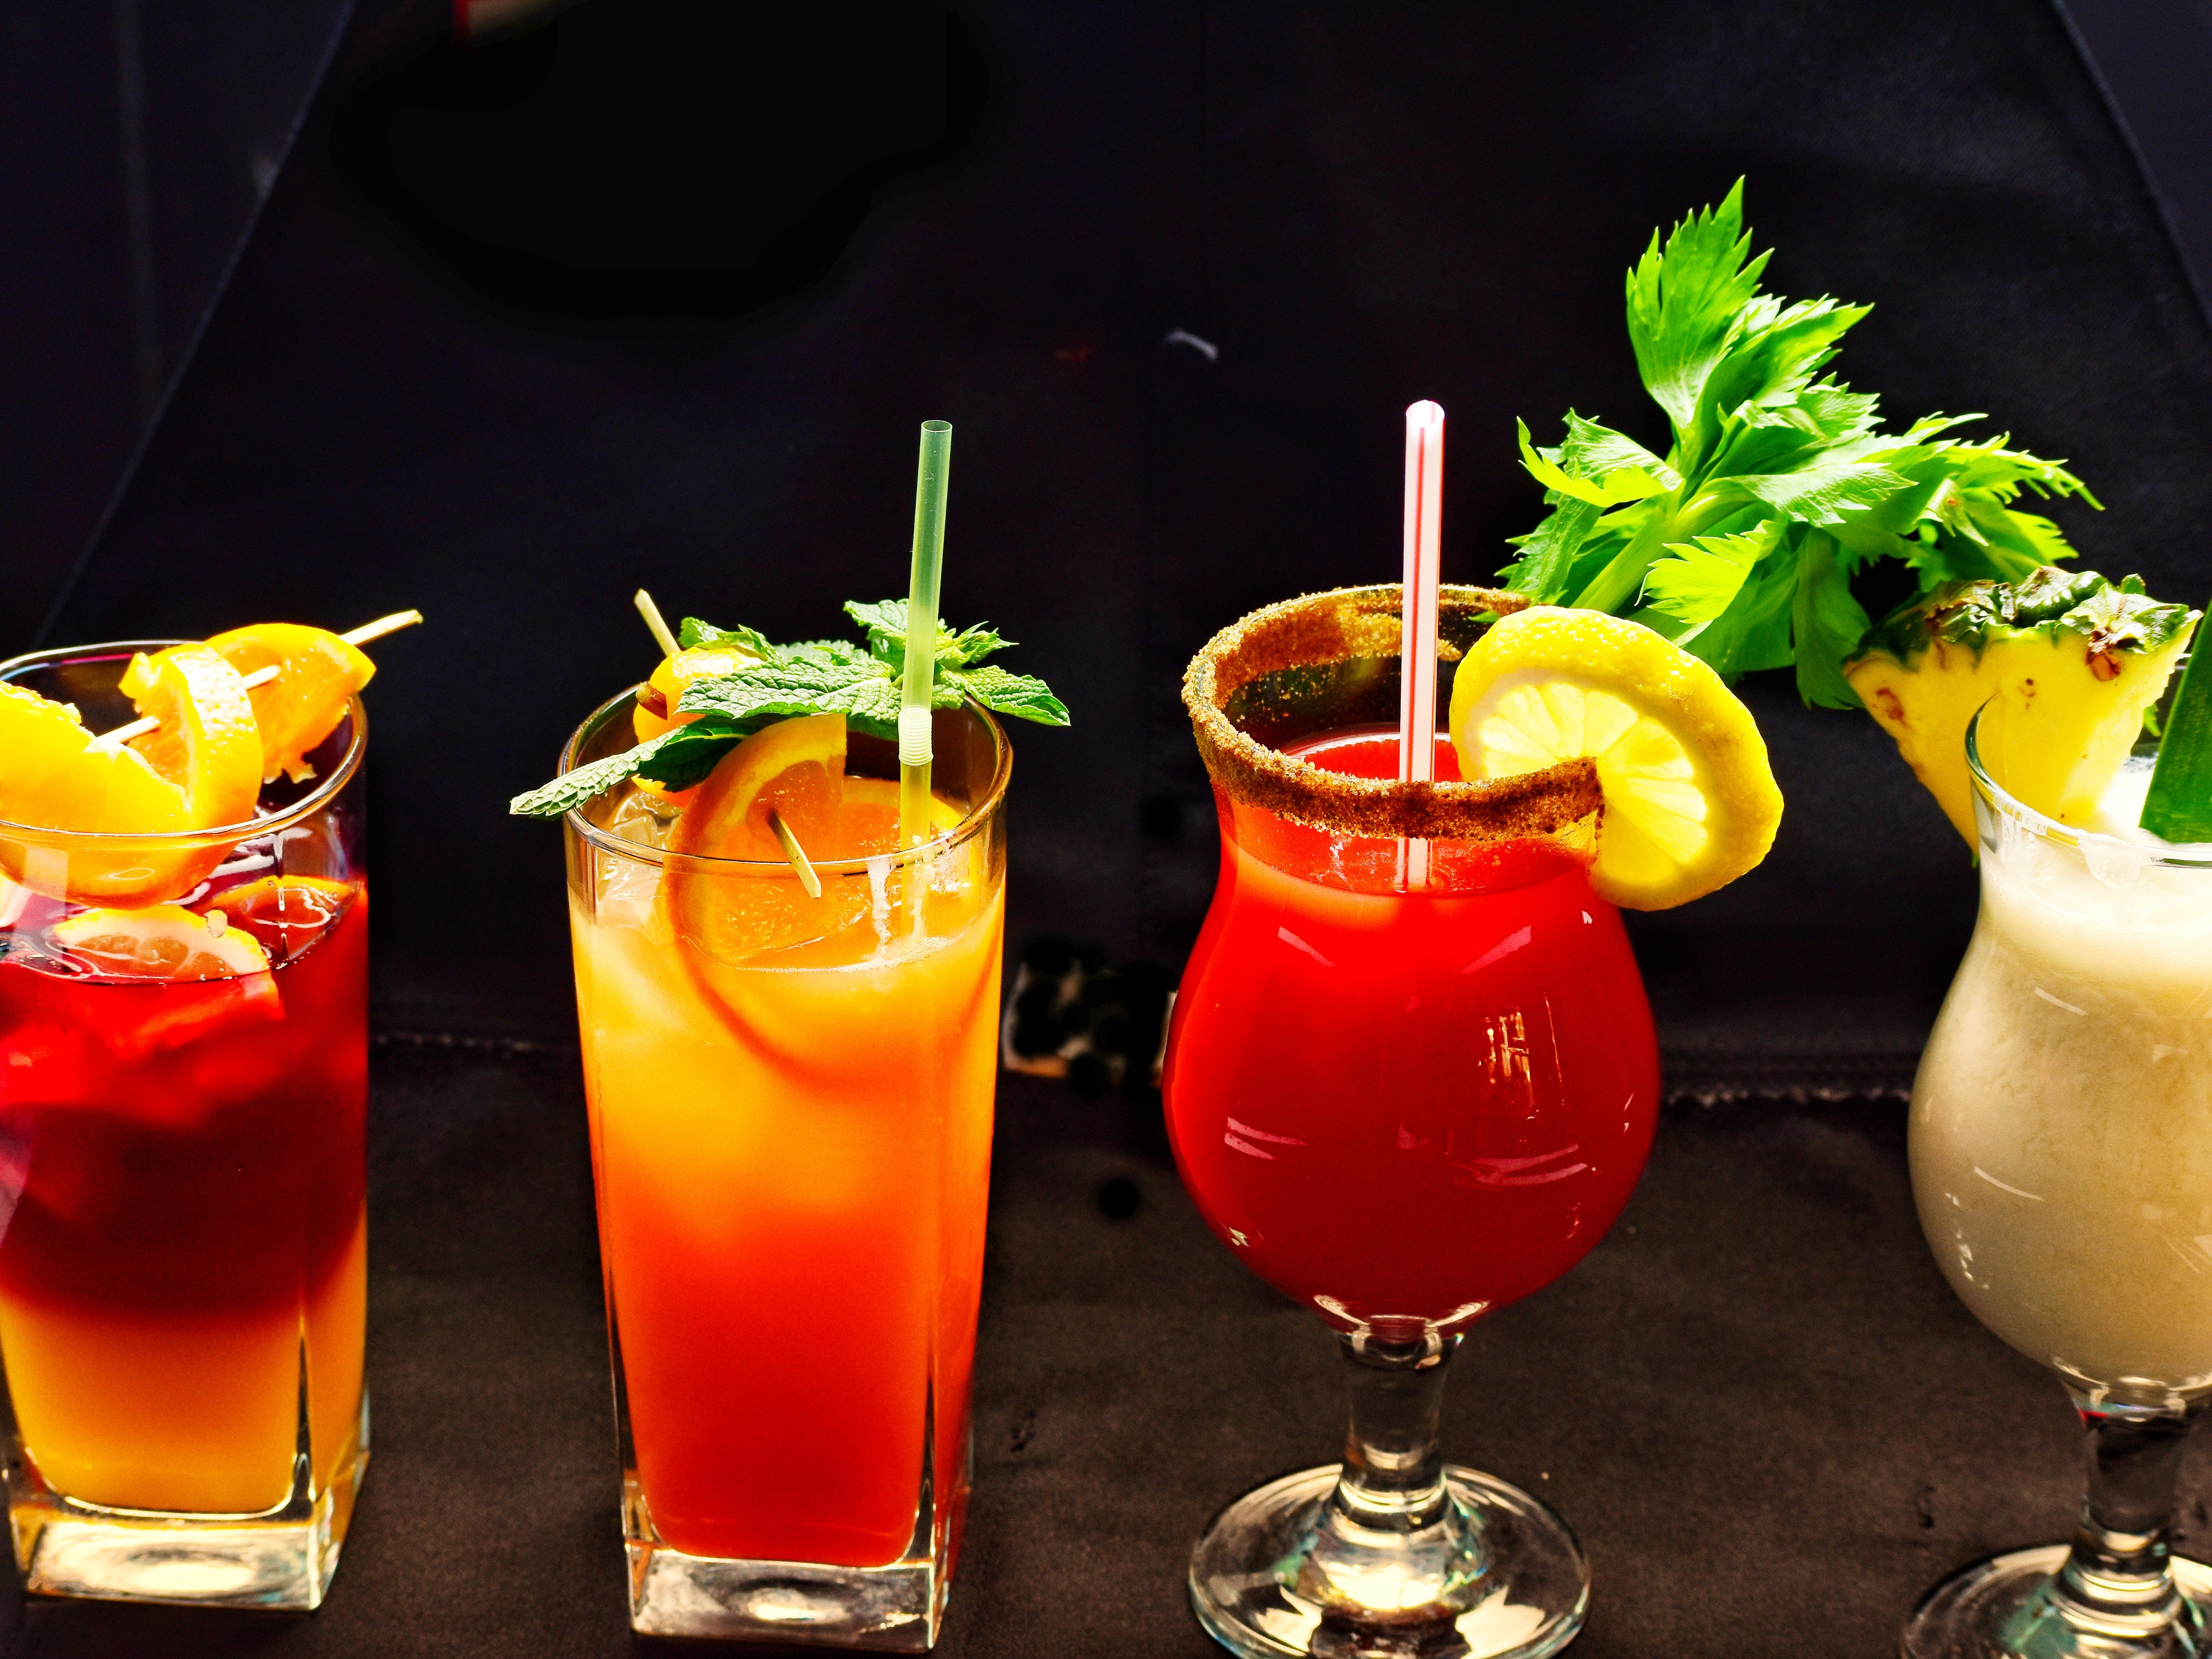 Four different glasses of brightly colored mixed cocktails, with a variety of garnishes